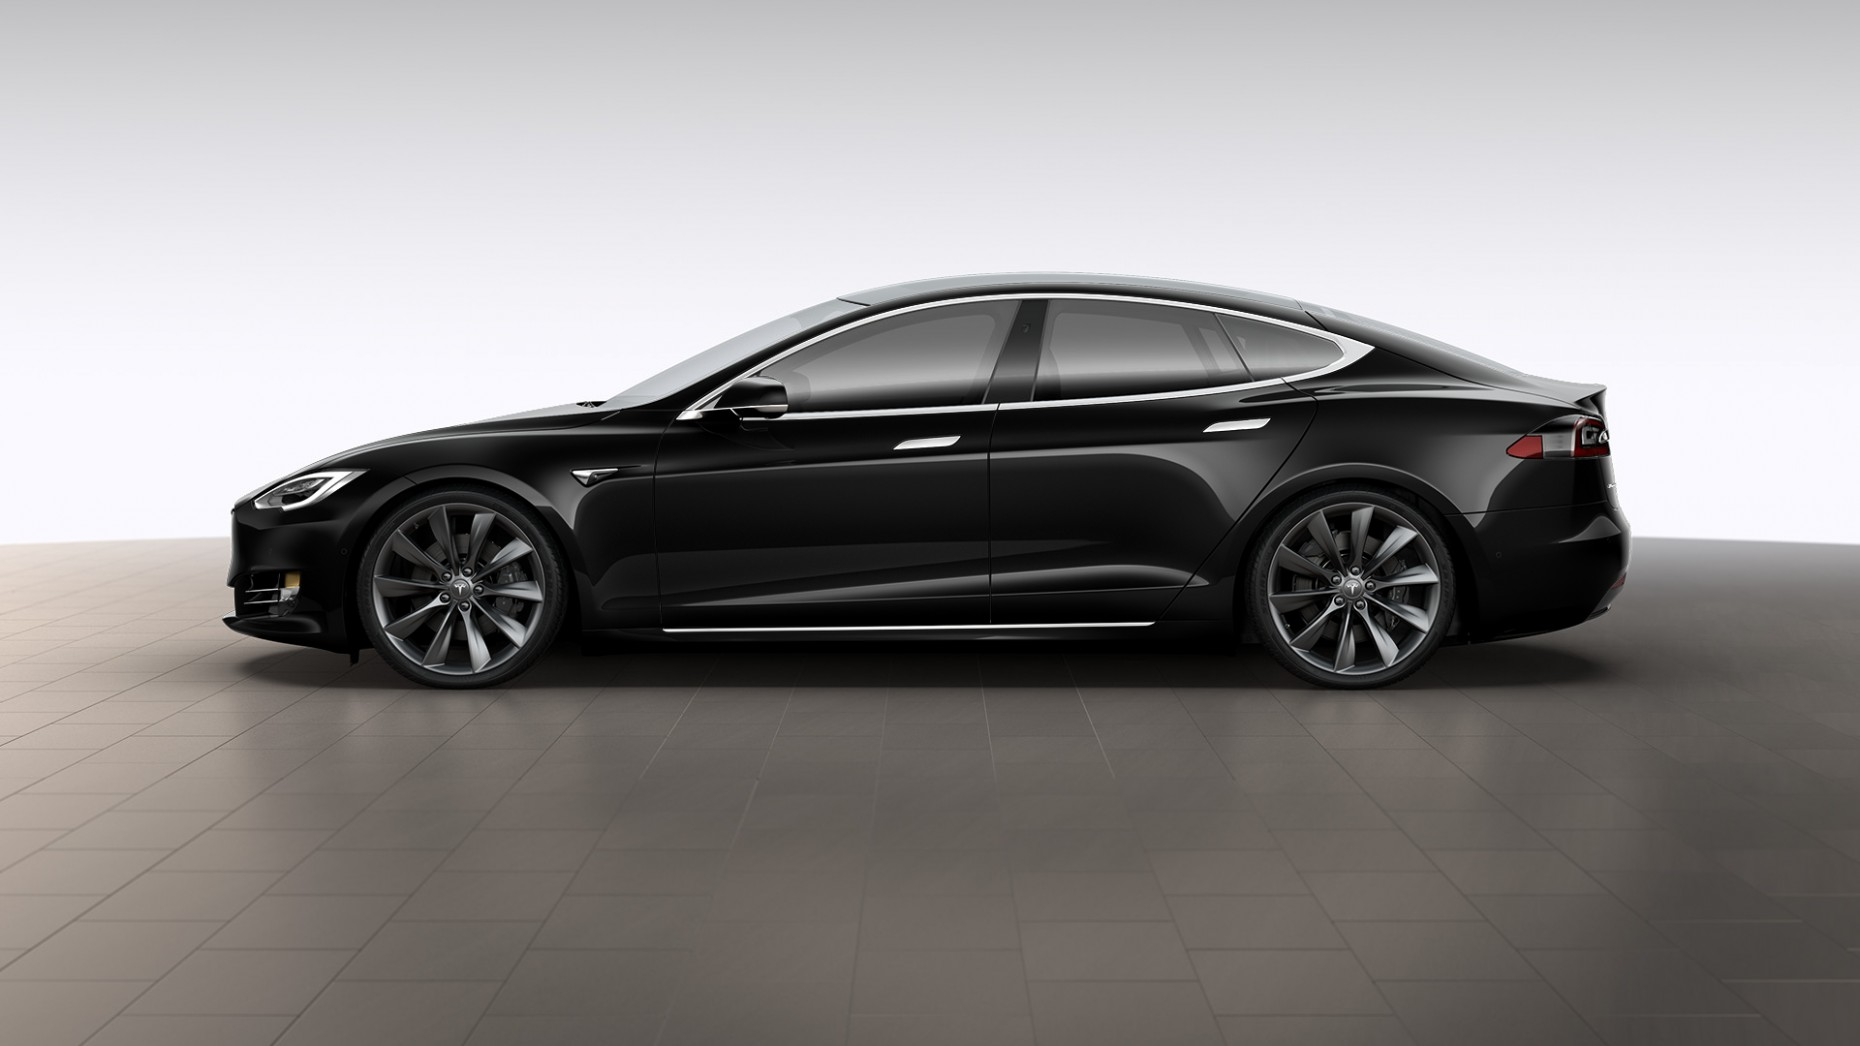 2017 tesla model s 100d obsidian black metallic paint vin 5yjsb7e27hf220772 for sale in new. Black Bedroom Furniture Sets. Home Design Ideas